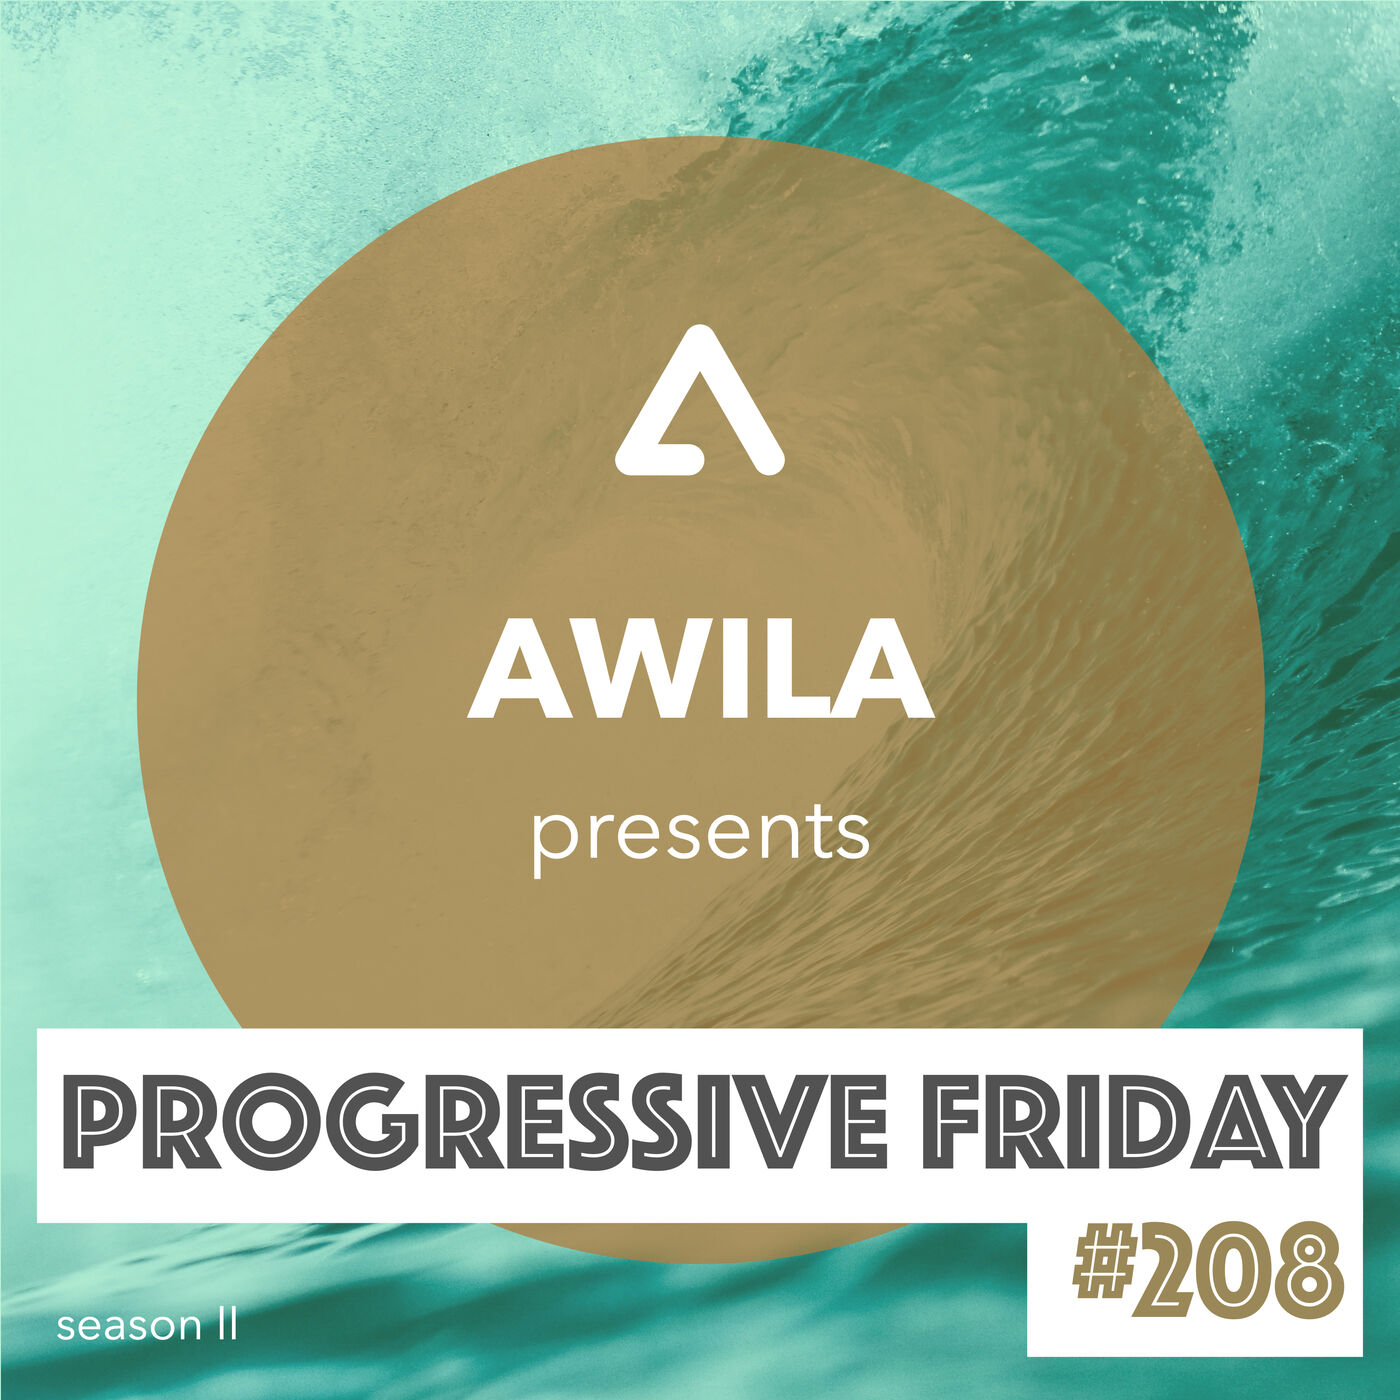 Progressive Friday #208